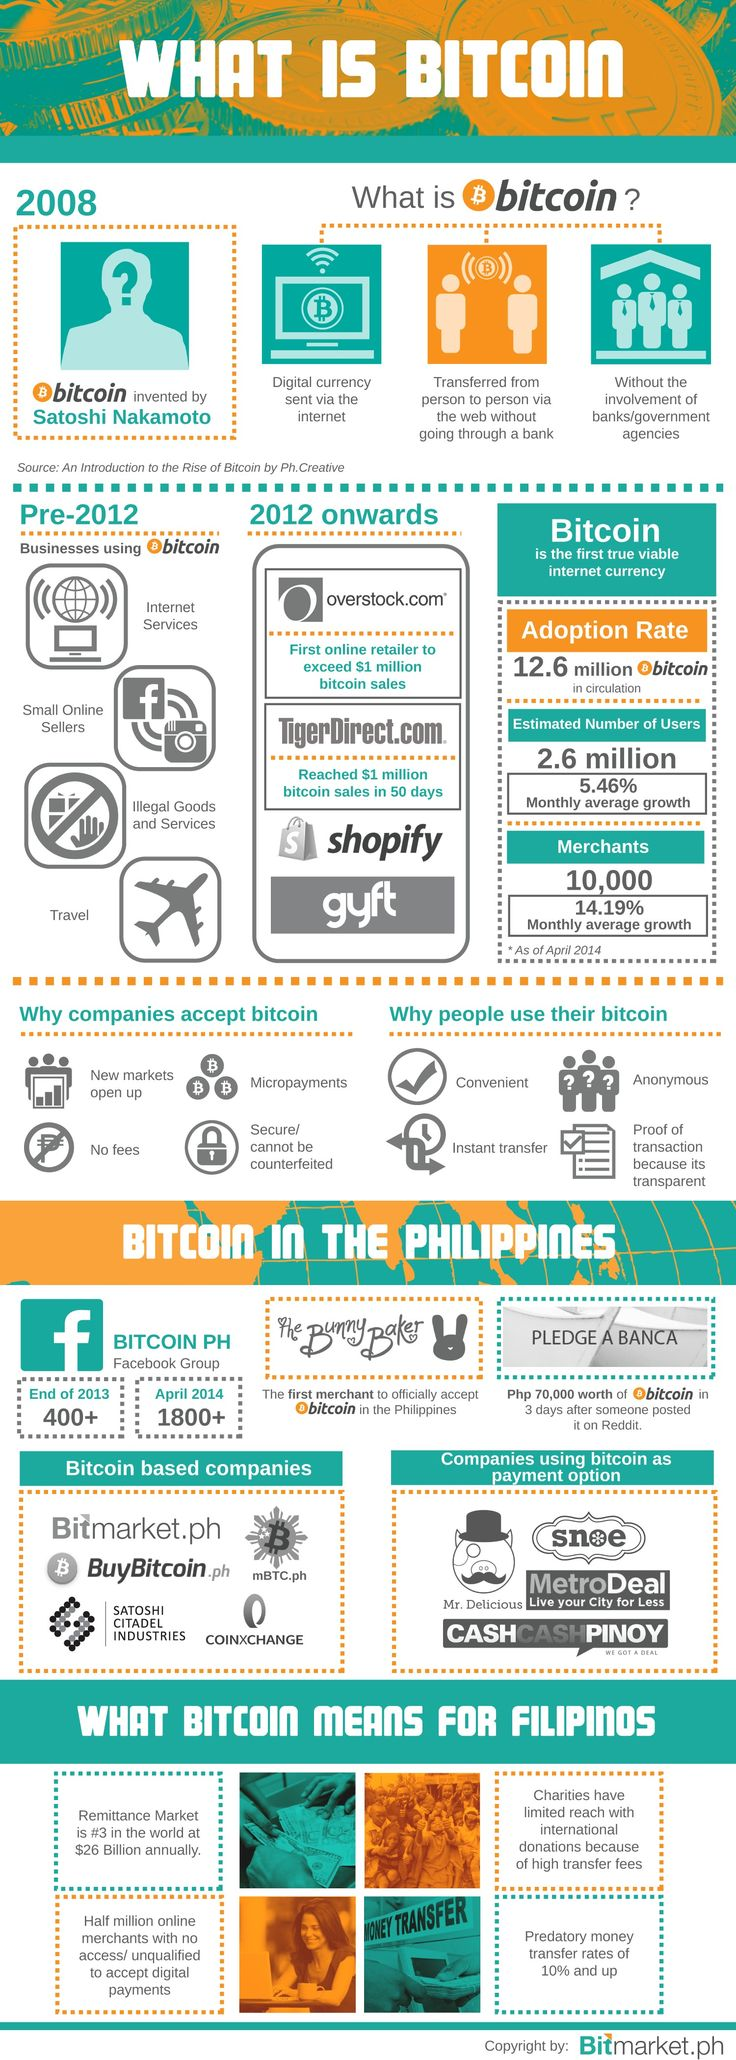 What is Bitcoin? BTW...make coin here FREE: http://btcfreemart.imobileappsys.com/defindex.php www.safaksari.com